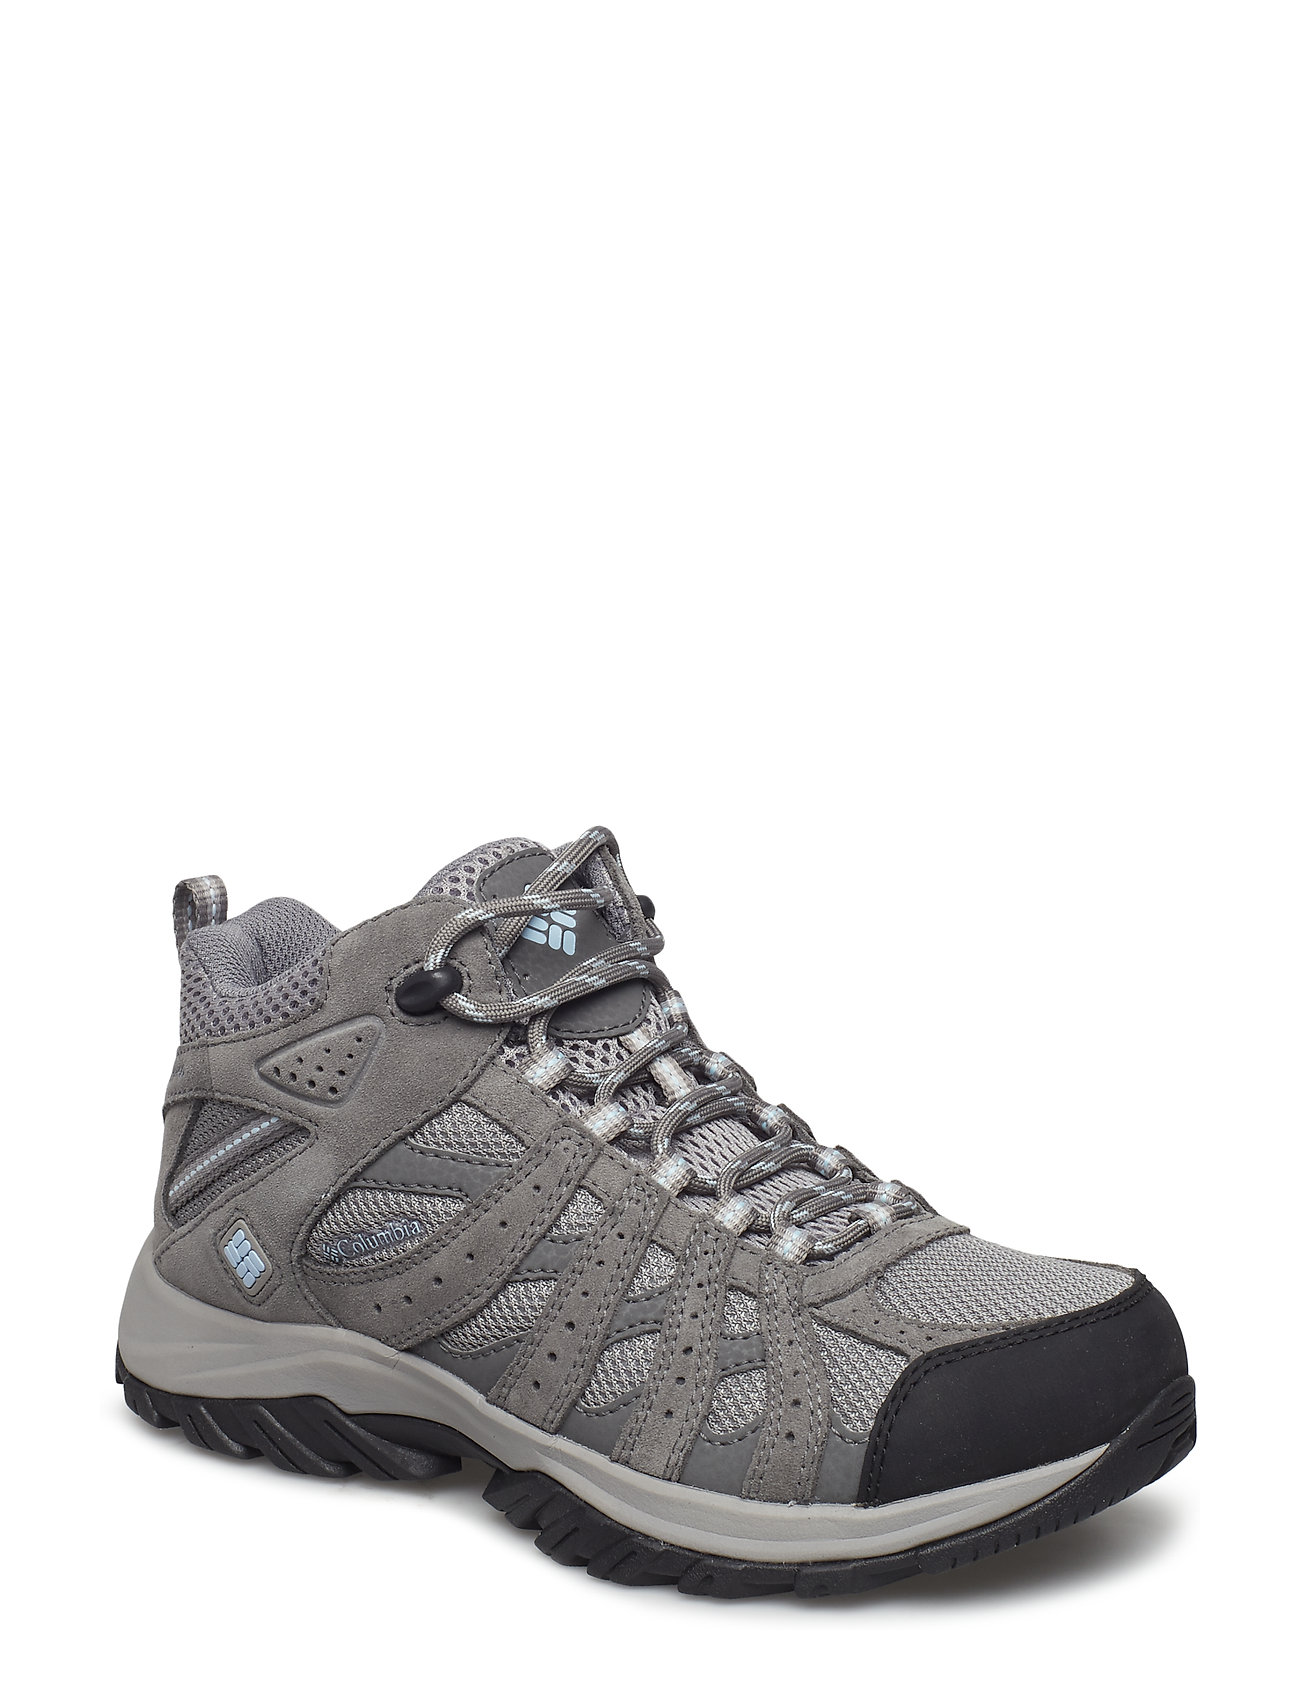 Columbia CANYON POINT™ MID WATERPROOF - LIGHTGREY, OXYGEN